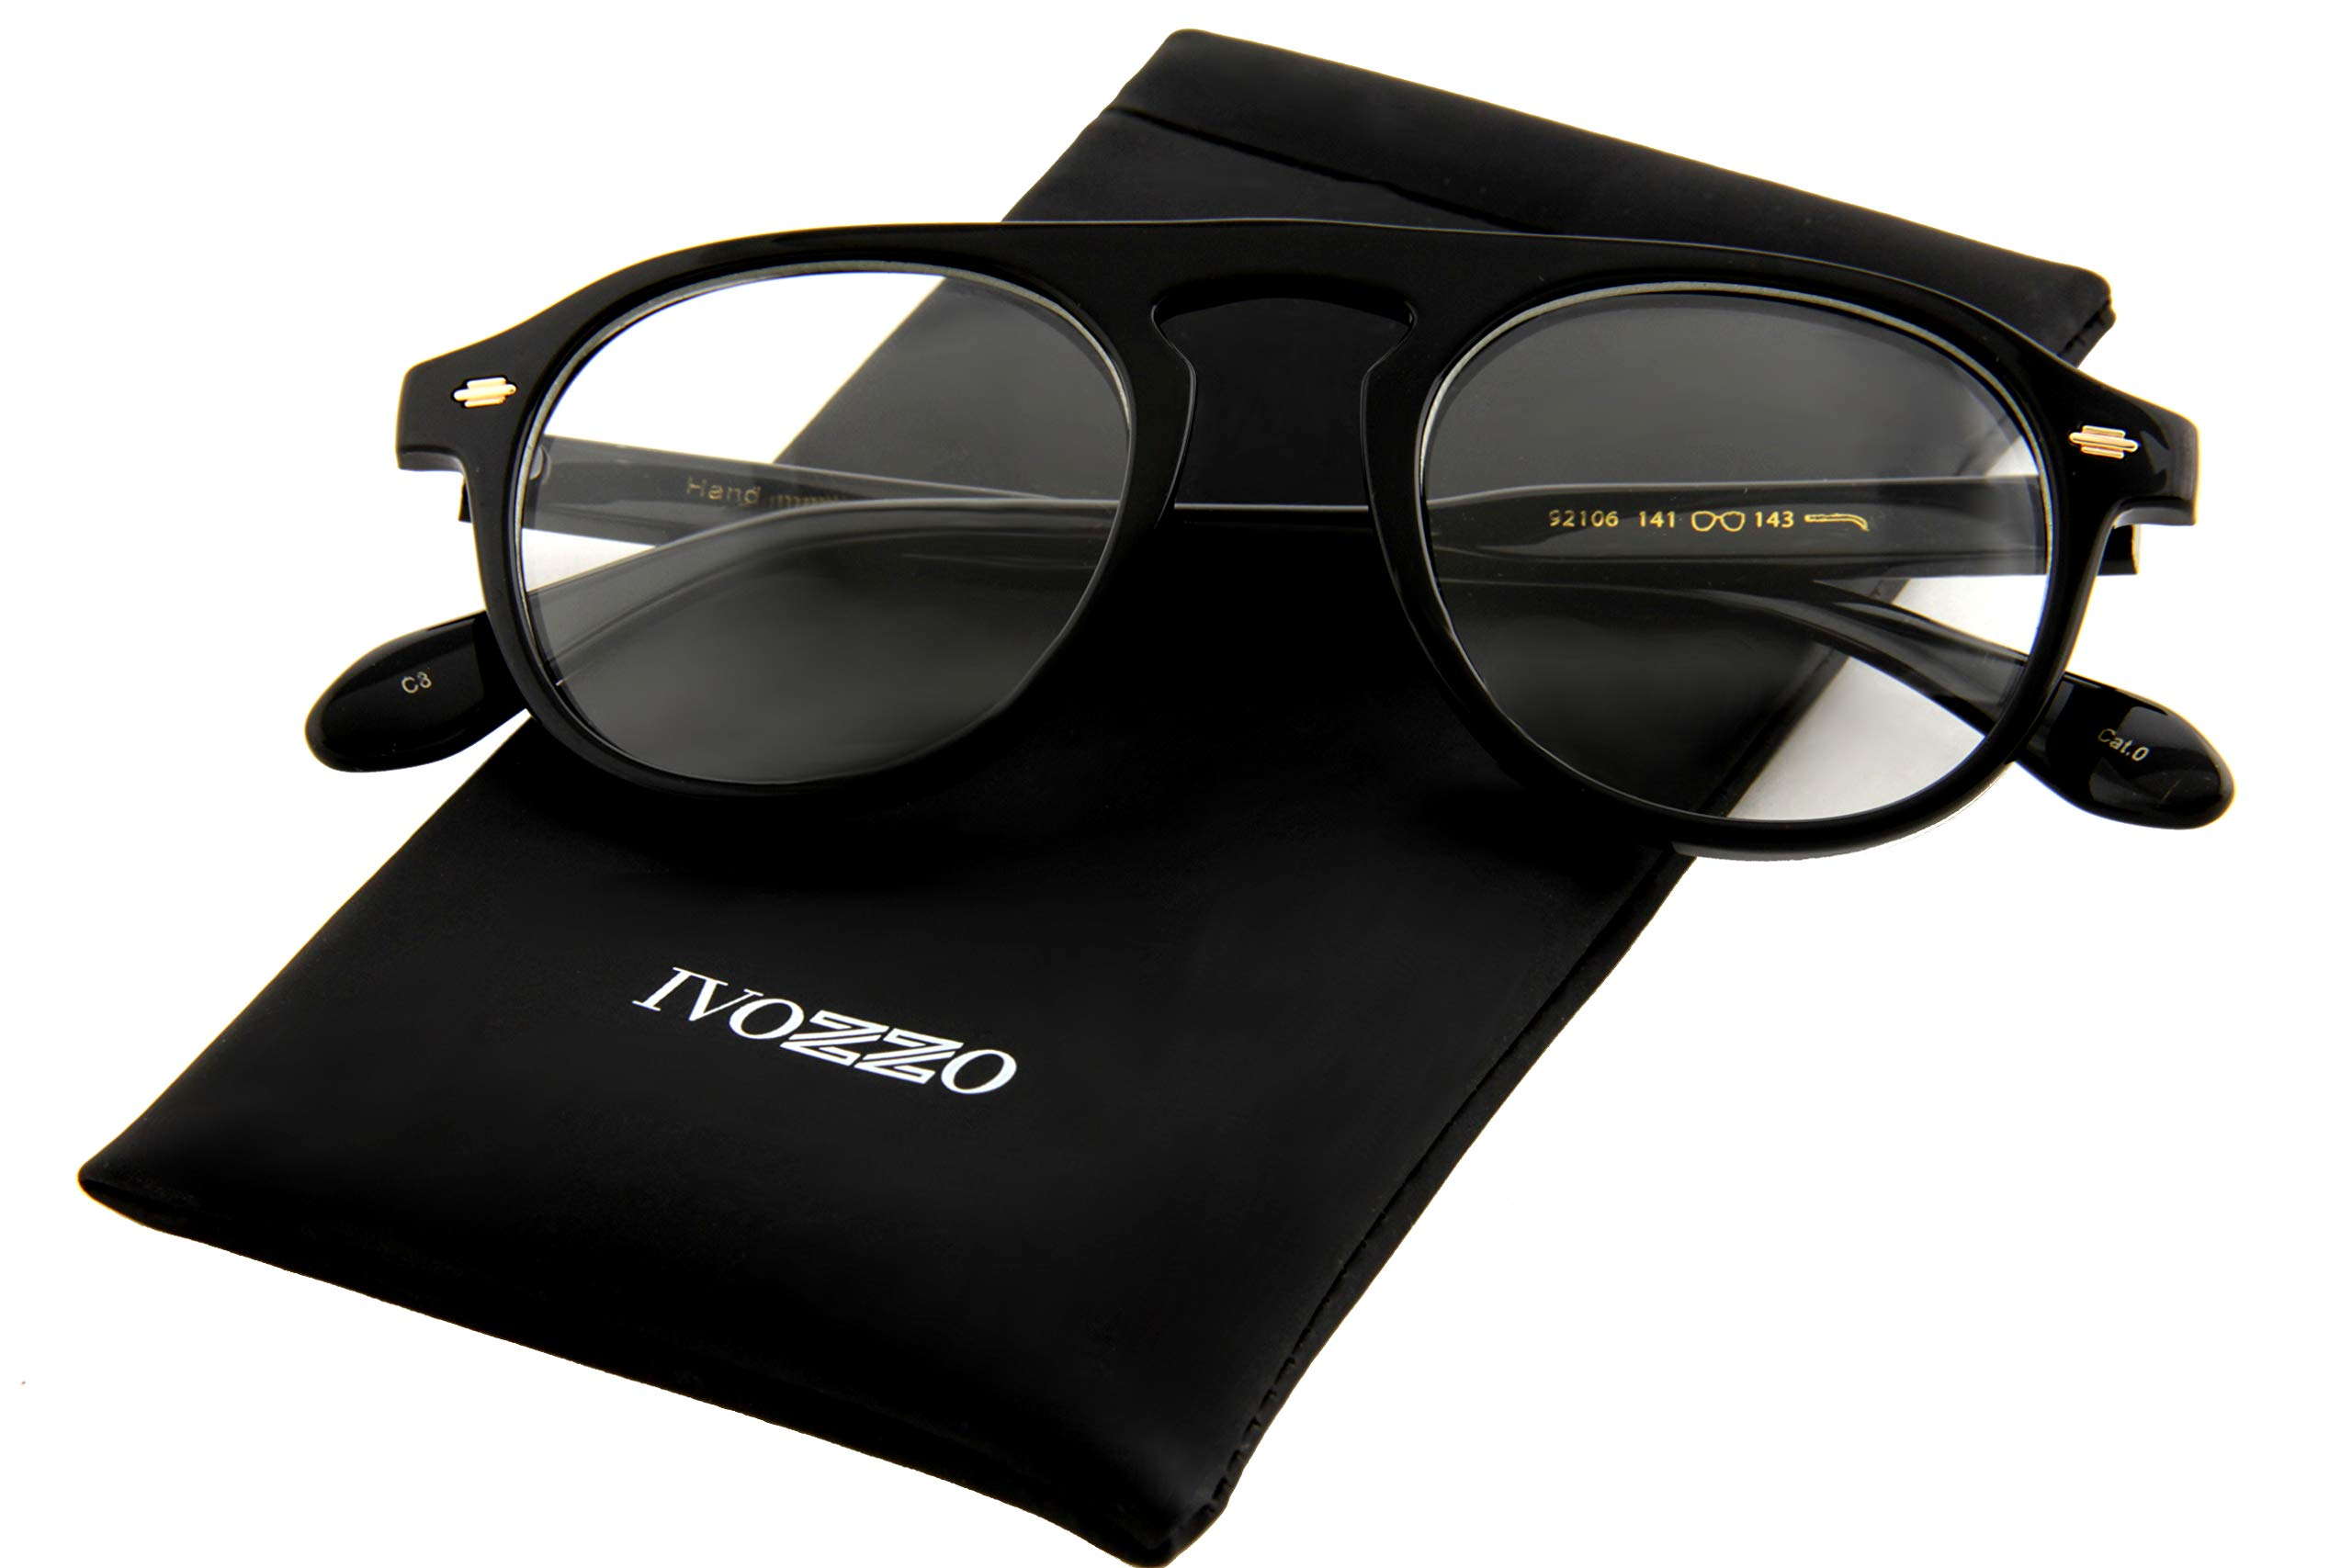 IVOZZO - Classic Round Clear Lens Gold Accents Retro Glasses